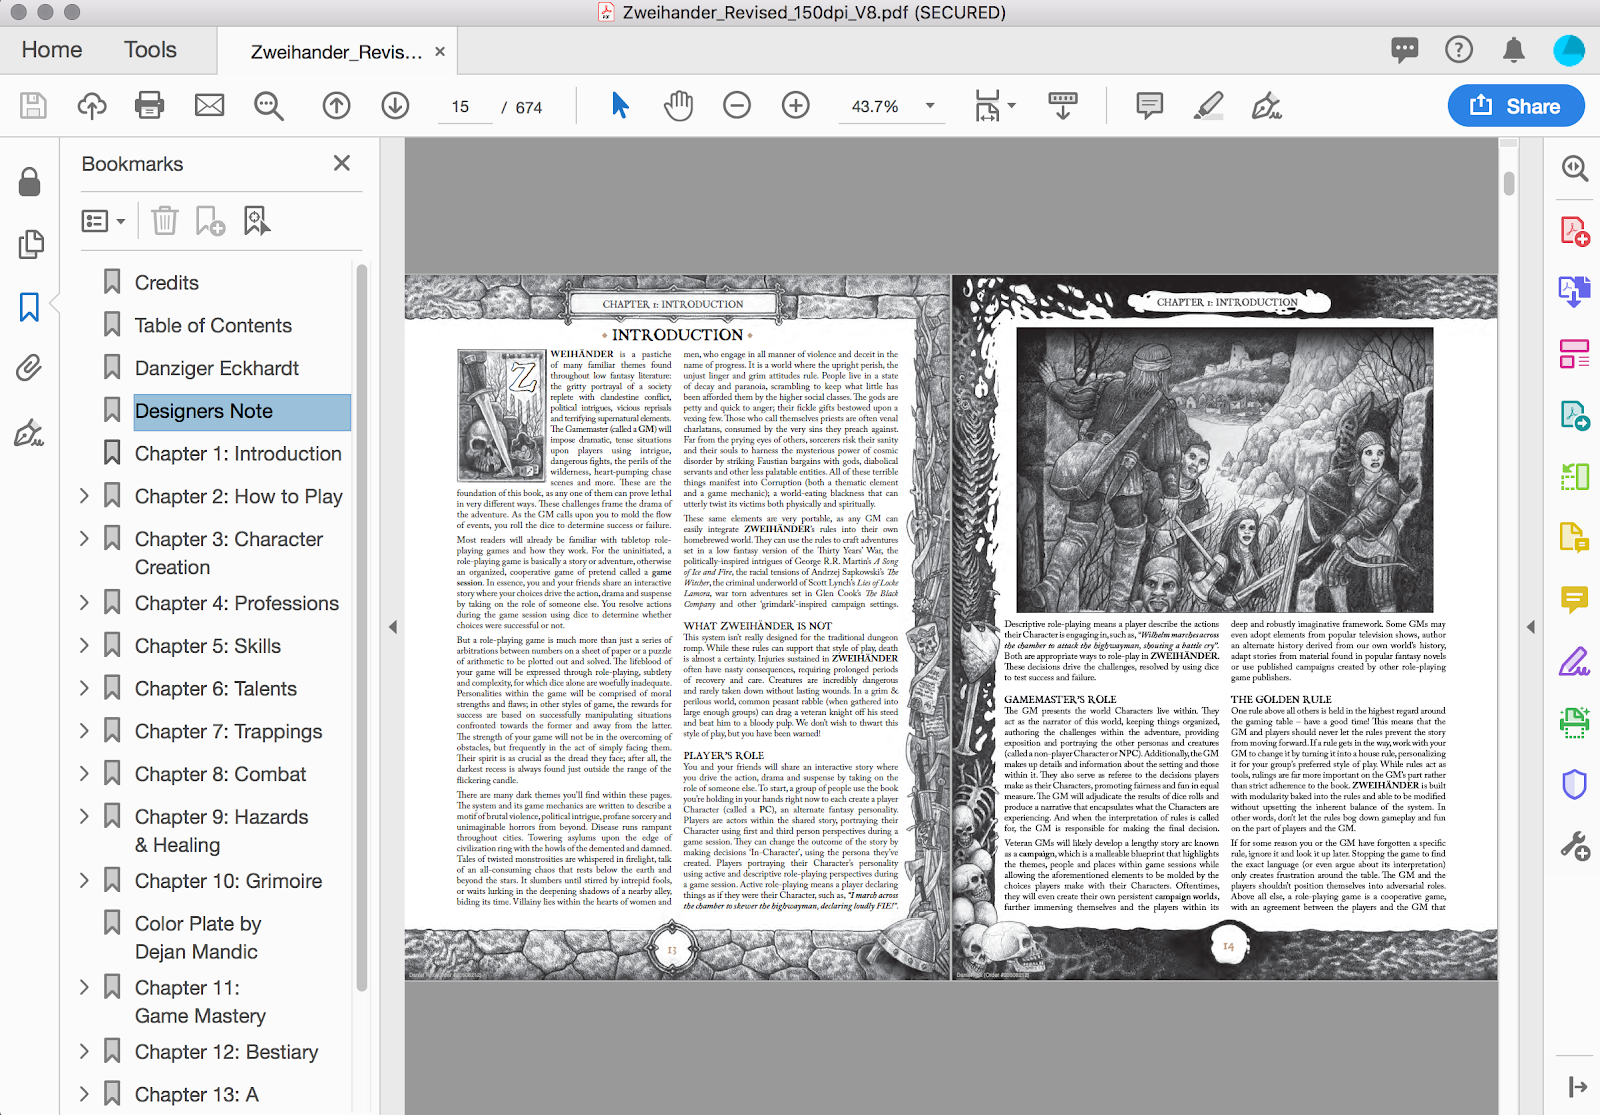 Roll20 Spotlight Encounter Roleplay Blackhearts Zweihander RPG Powered by Zweihander #TetsuboRPG Tetsubo RPG tetsubo main gauche RPG MainGauche grim and perilous zweihander rpg #ZweihanderRPG #MainGauche #GrimAndPerilous #GrimAndPerilousLibrary #DarkFantasy grimandperilous warhammer fantasy roleplay retroclone warhammerfantasyroleplay #WFRP #DND